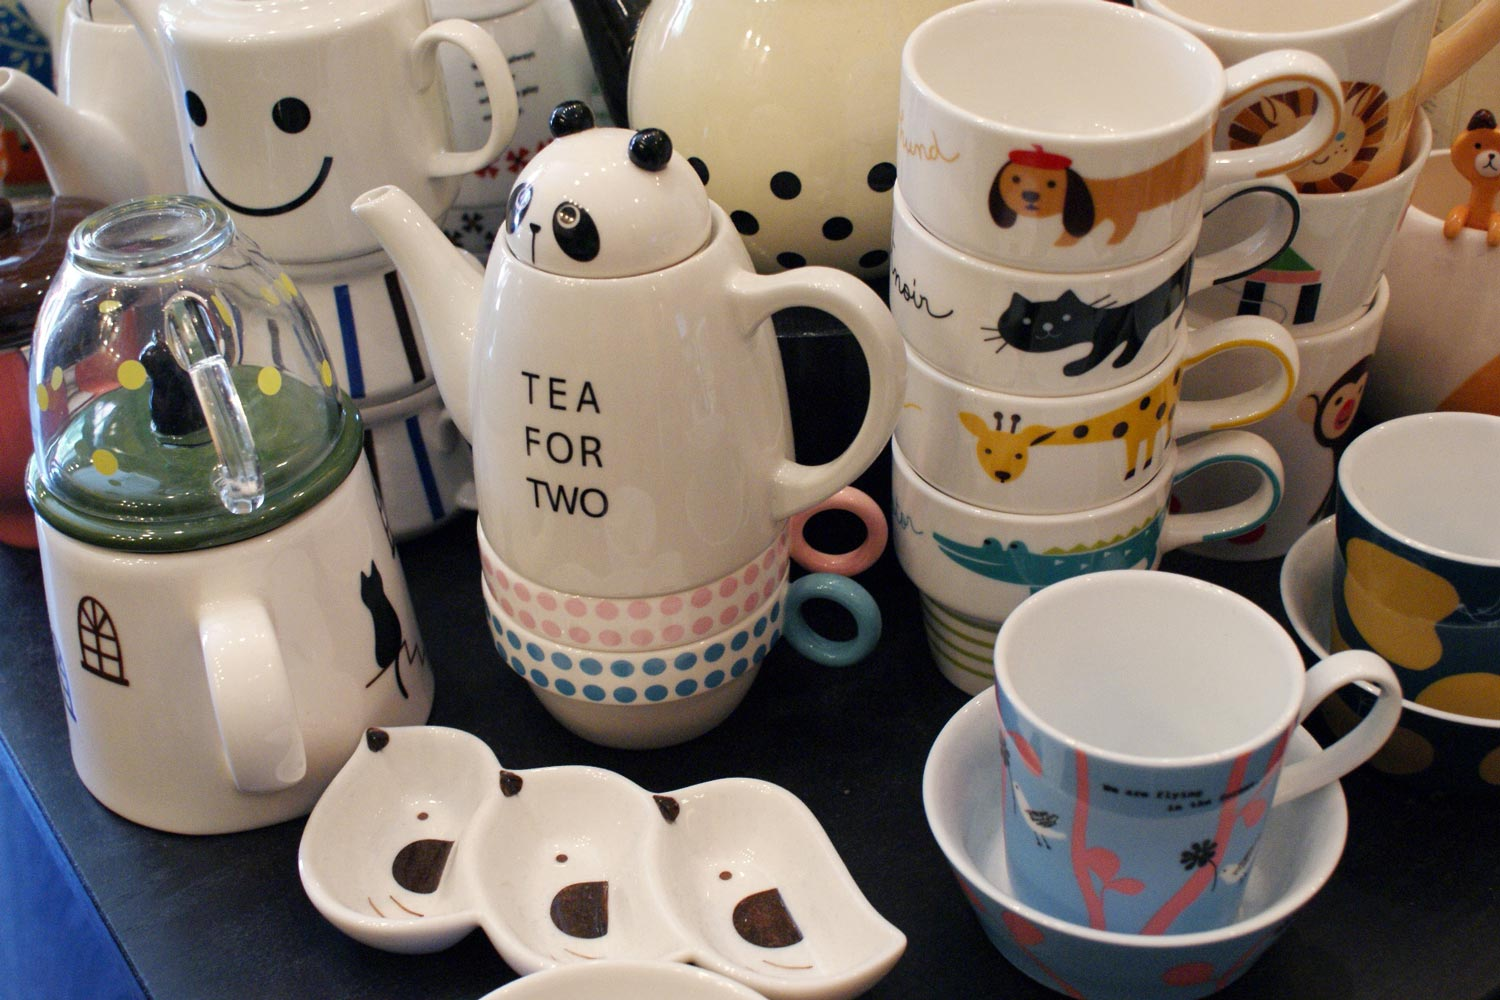 Our whimsical ceramics were hot sellers. When they became more commercially available, we felt it was time to move on.